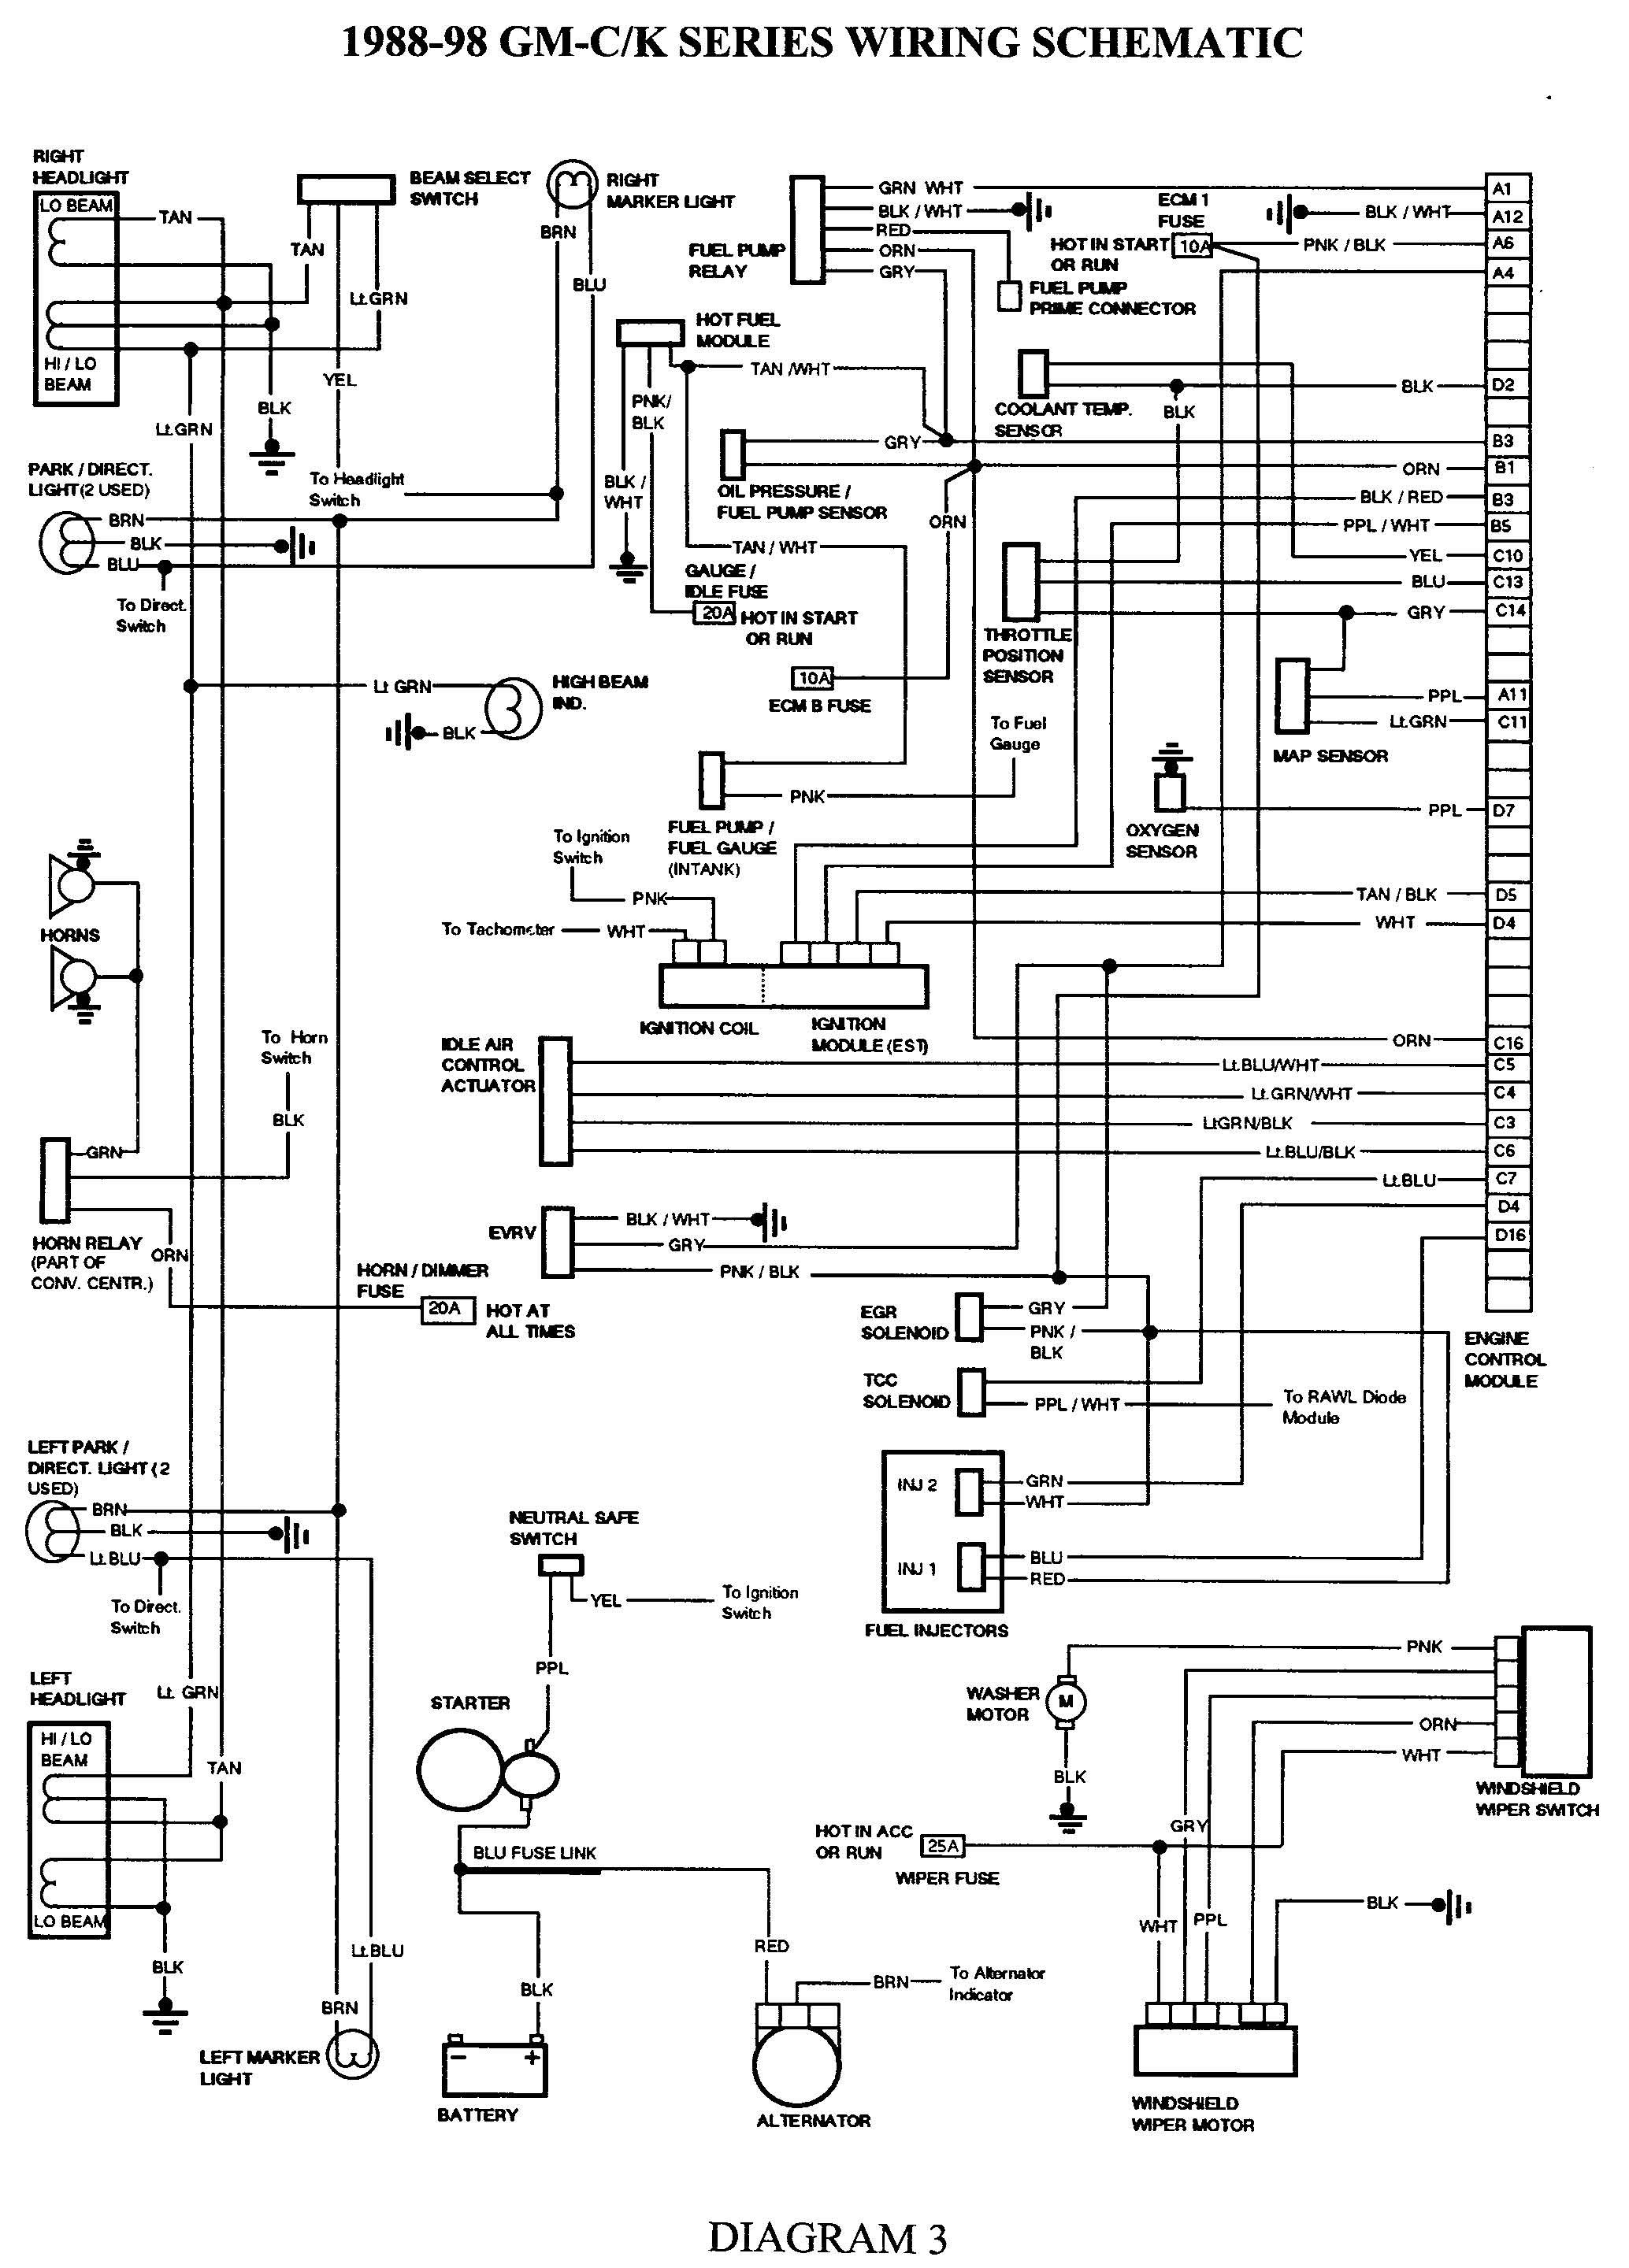 1995 caprice wiring diagram wiring diagram todays 1998 mercury sable 1988 chevy caprice ignition diagram wiring [ 2068 x 2880 Pixel ]